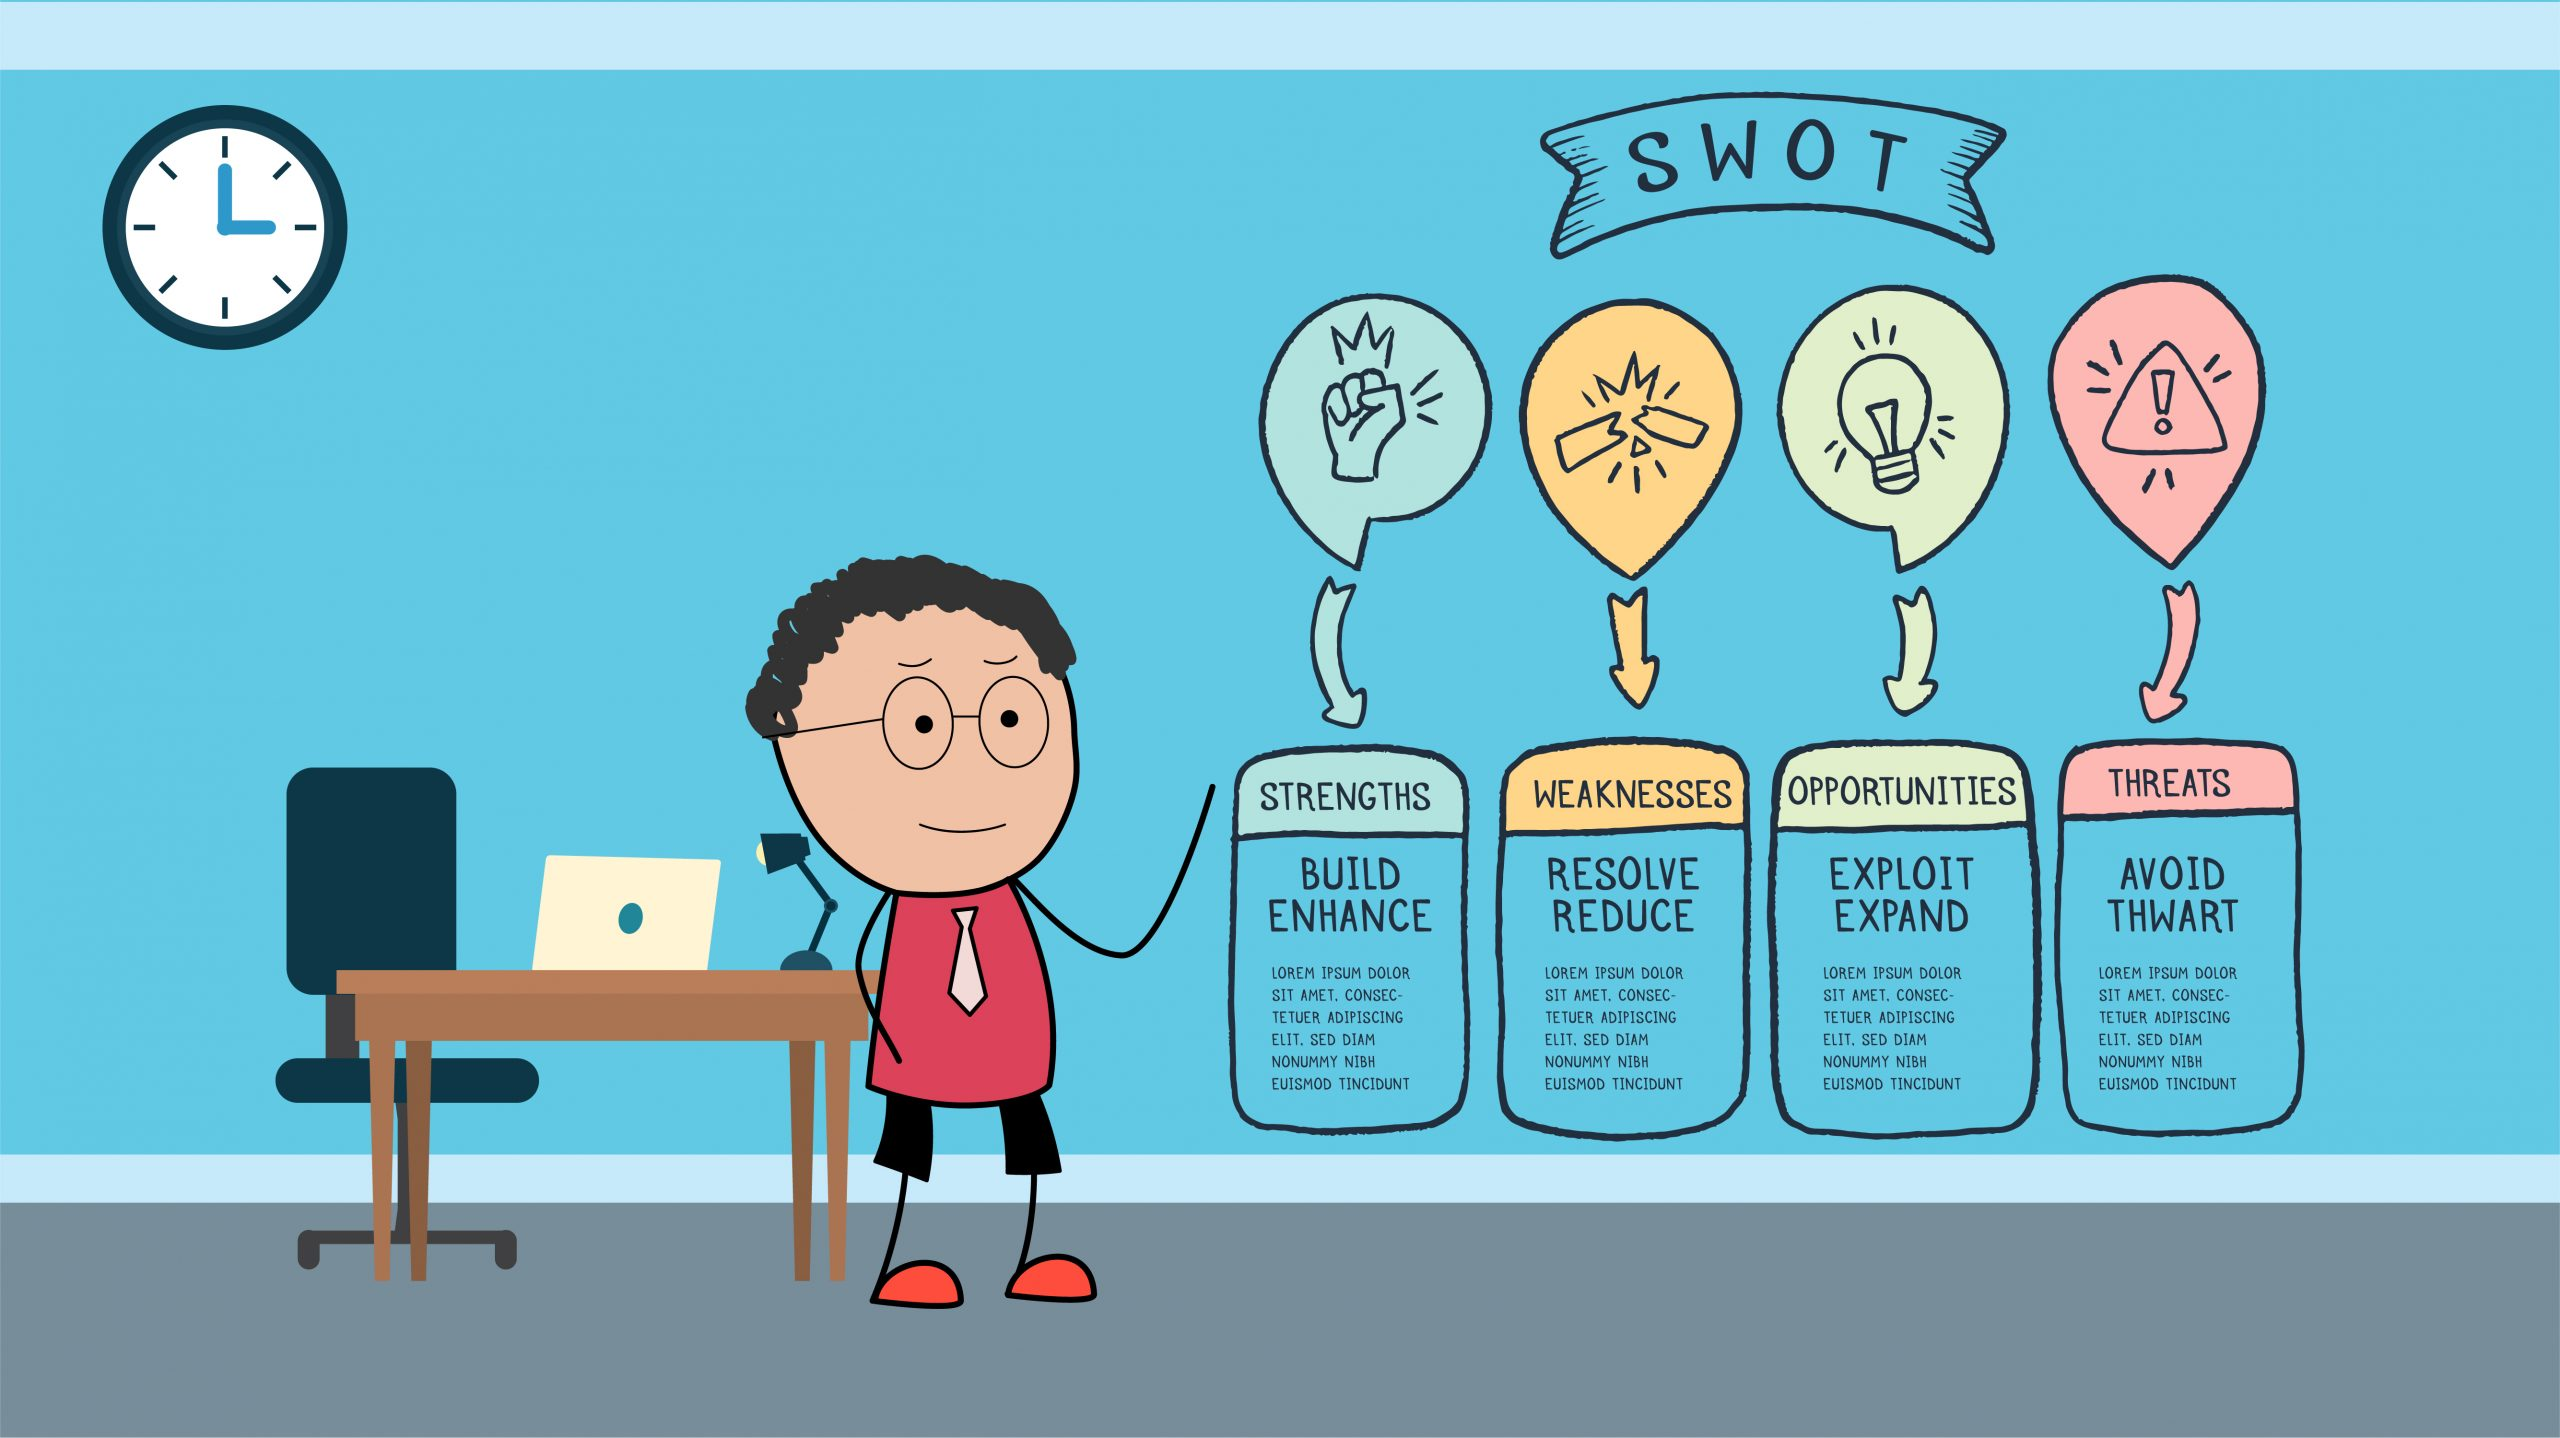 SWOT Analysis Explained (Plus Examples and Free Template)